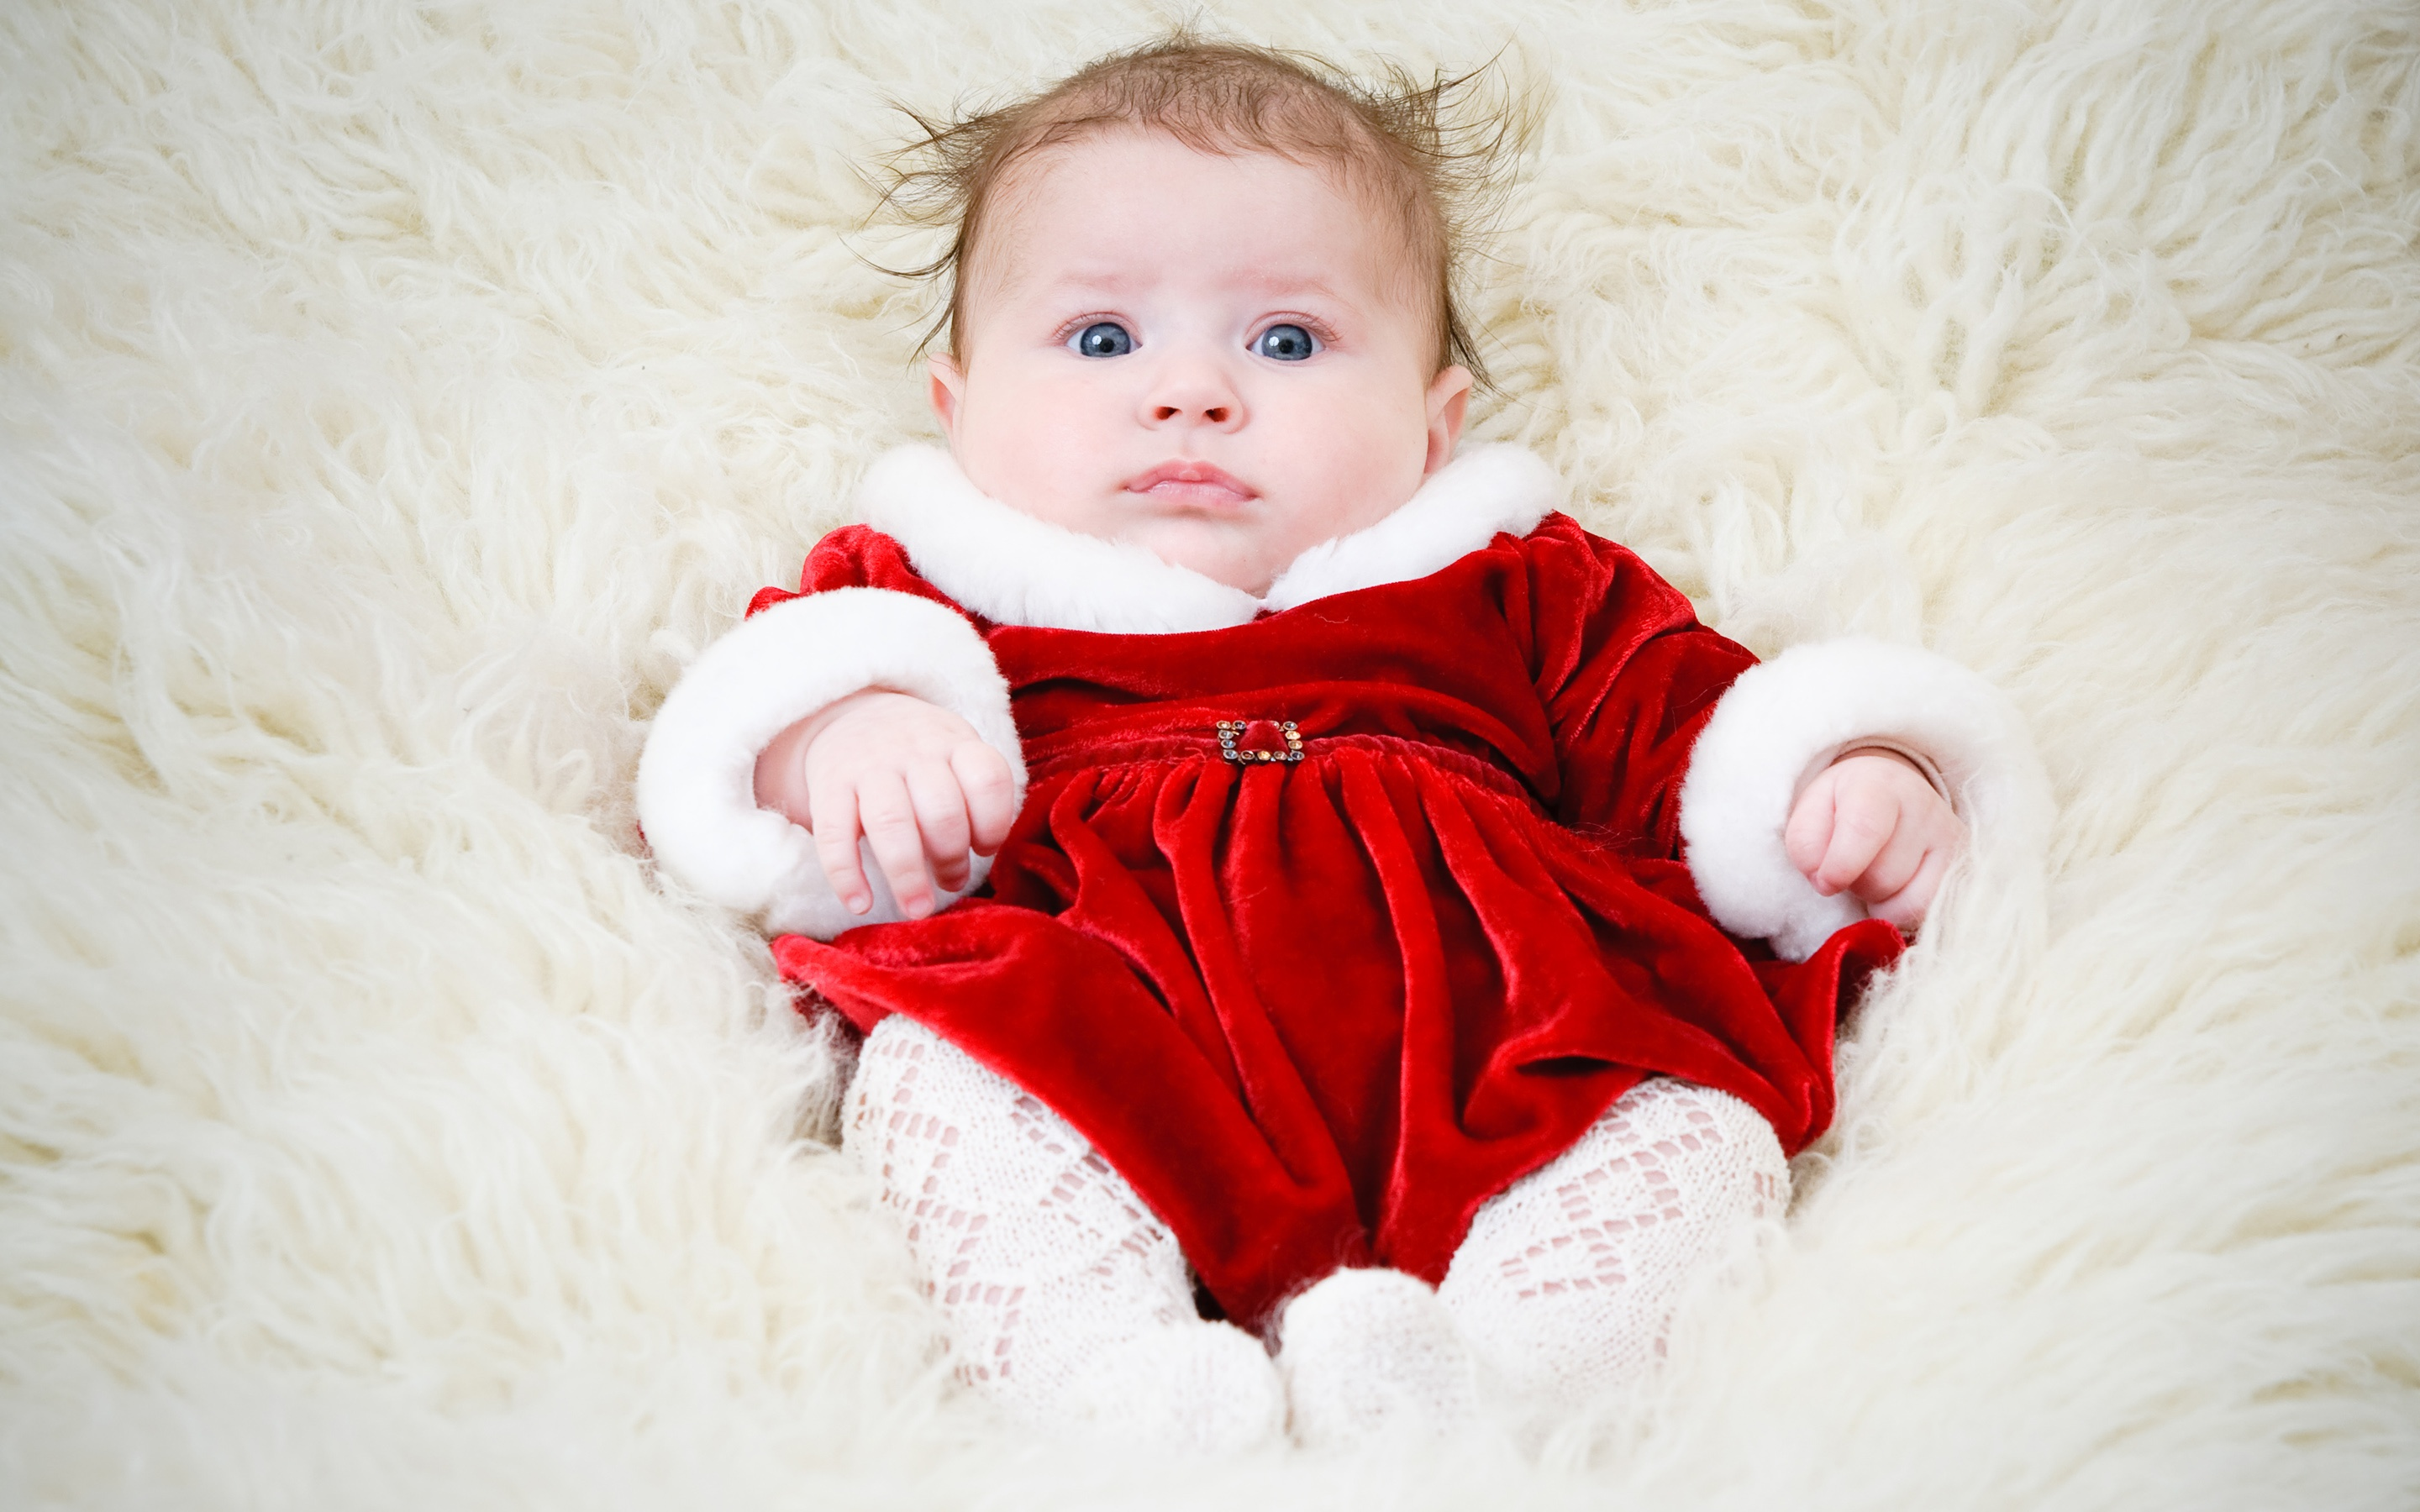 Cute Baby Girl Wallpapers Free Download: Adorable Cute Baby Girl Wallpapers In Jpg Format For Free